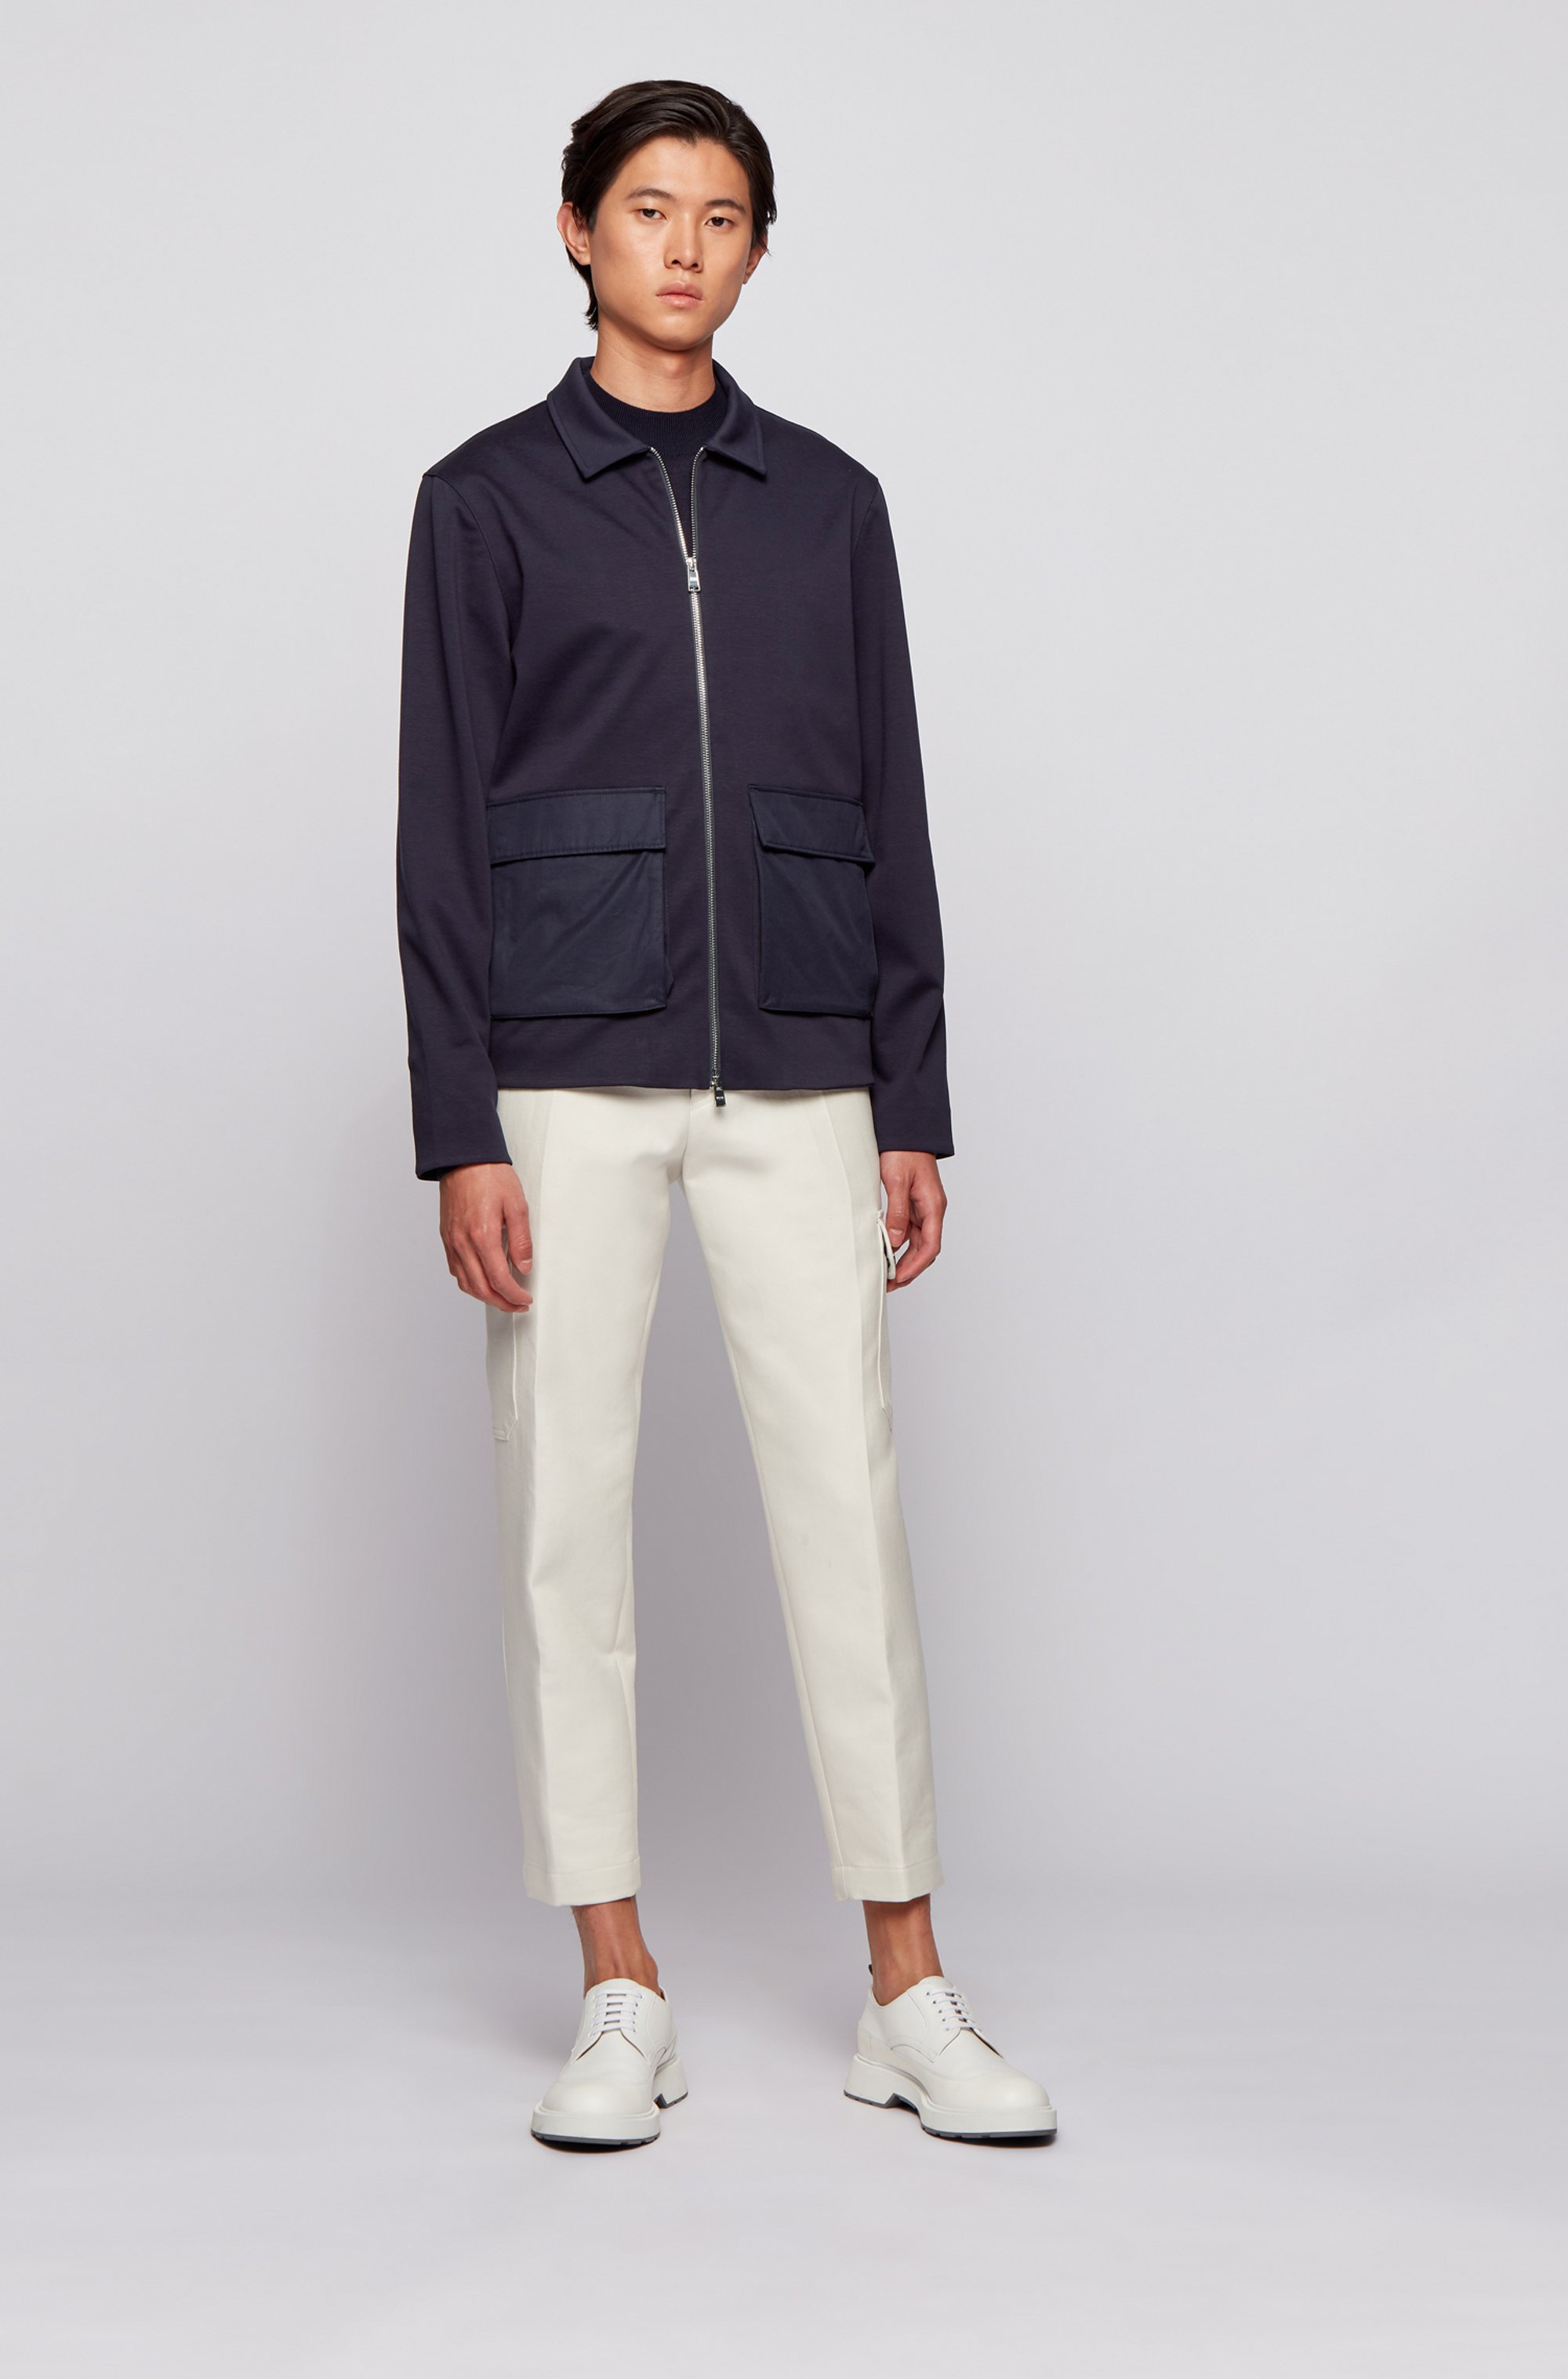 Cotton-blend zip-up sweatshirt with patched pockets